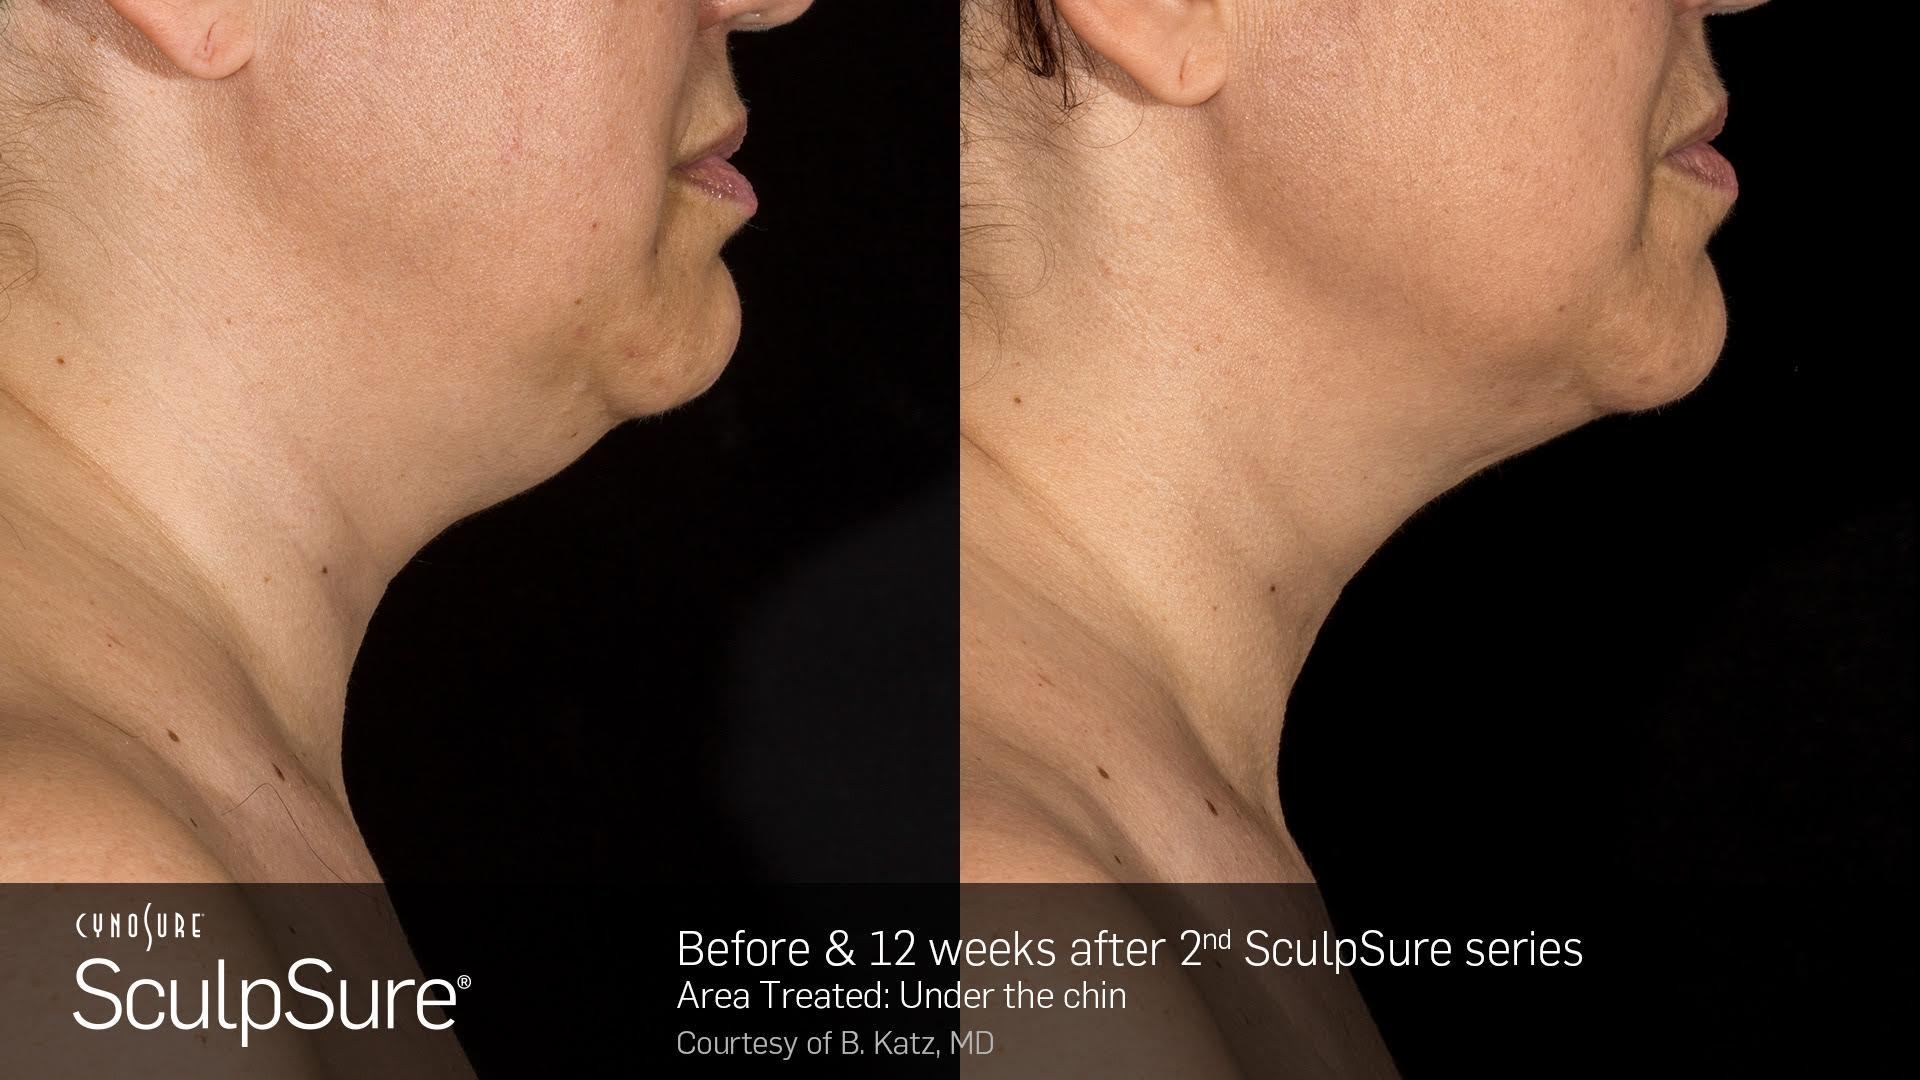 sculpsure before and after 12 weeks